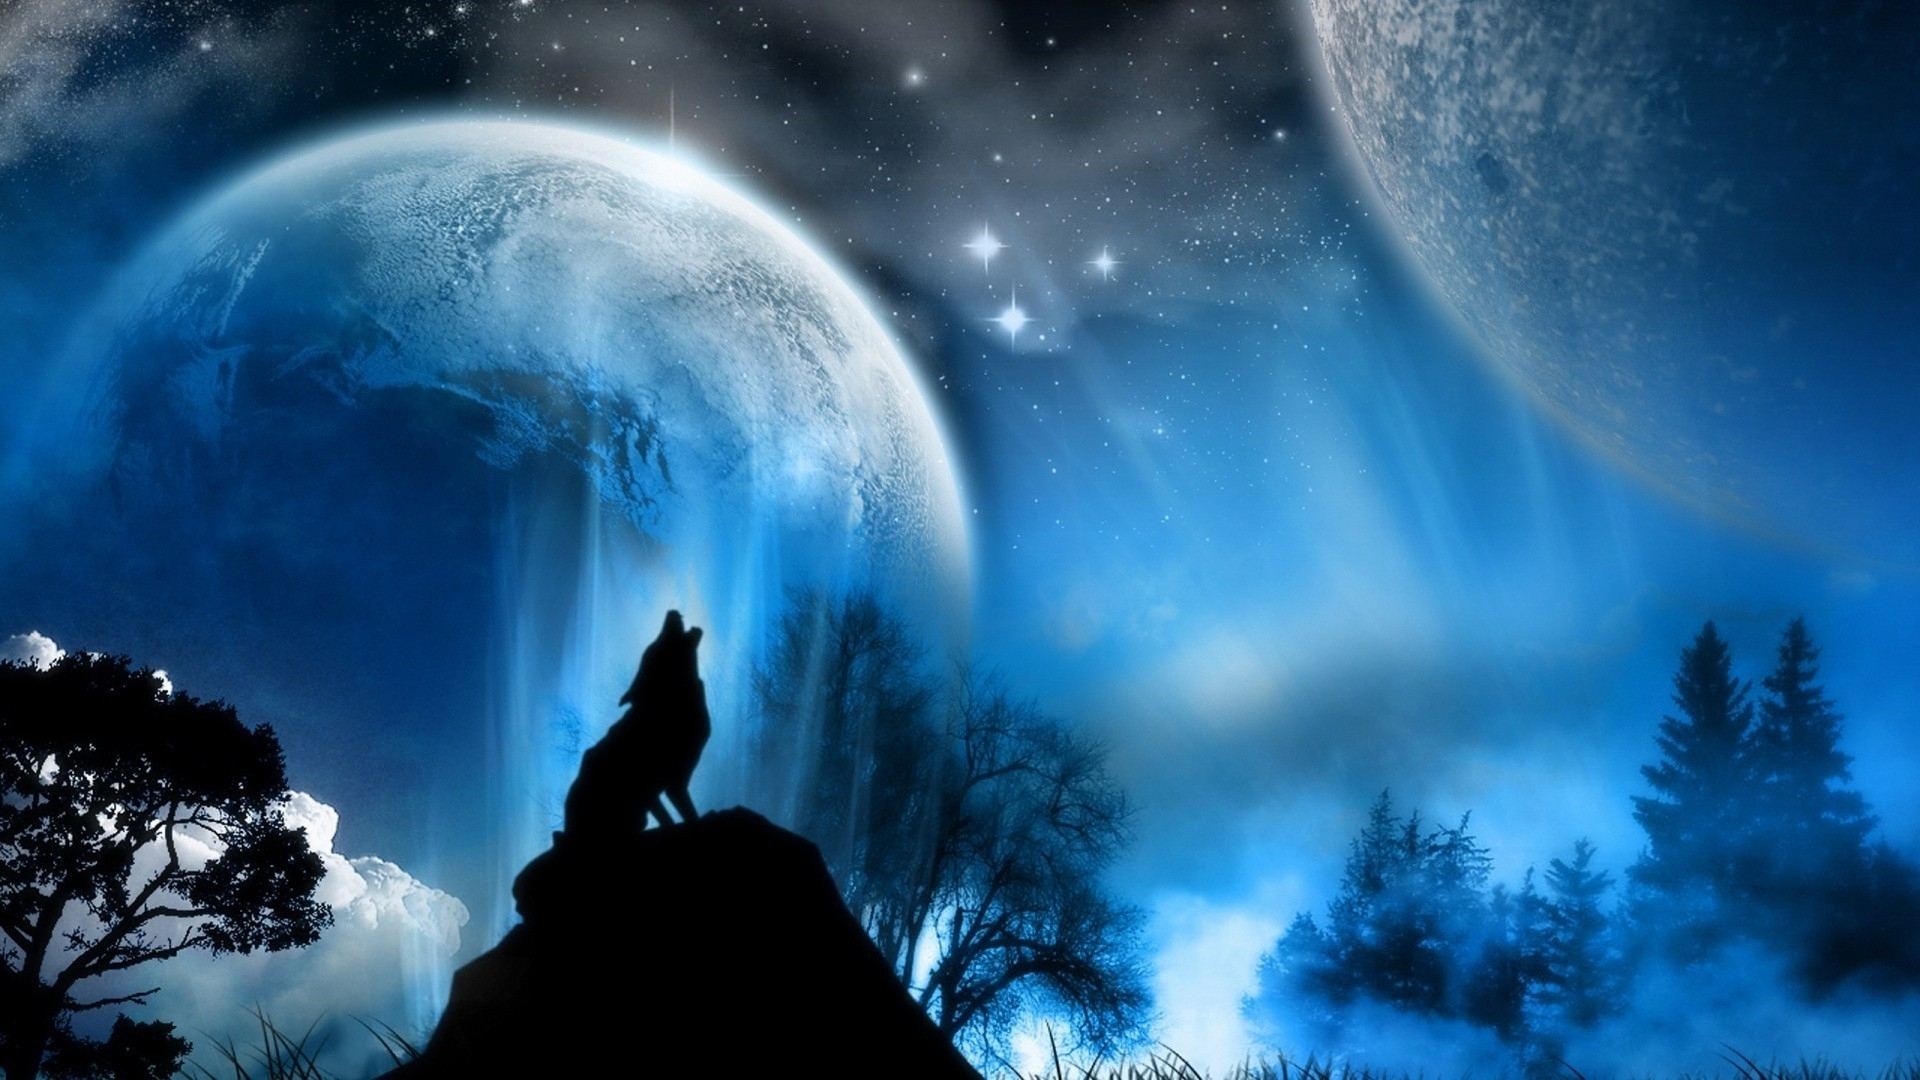 wolf howling at the moon wallpaper (66+ images)